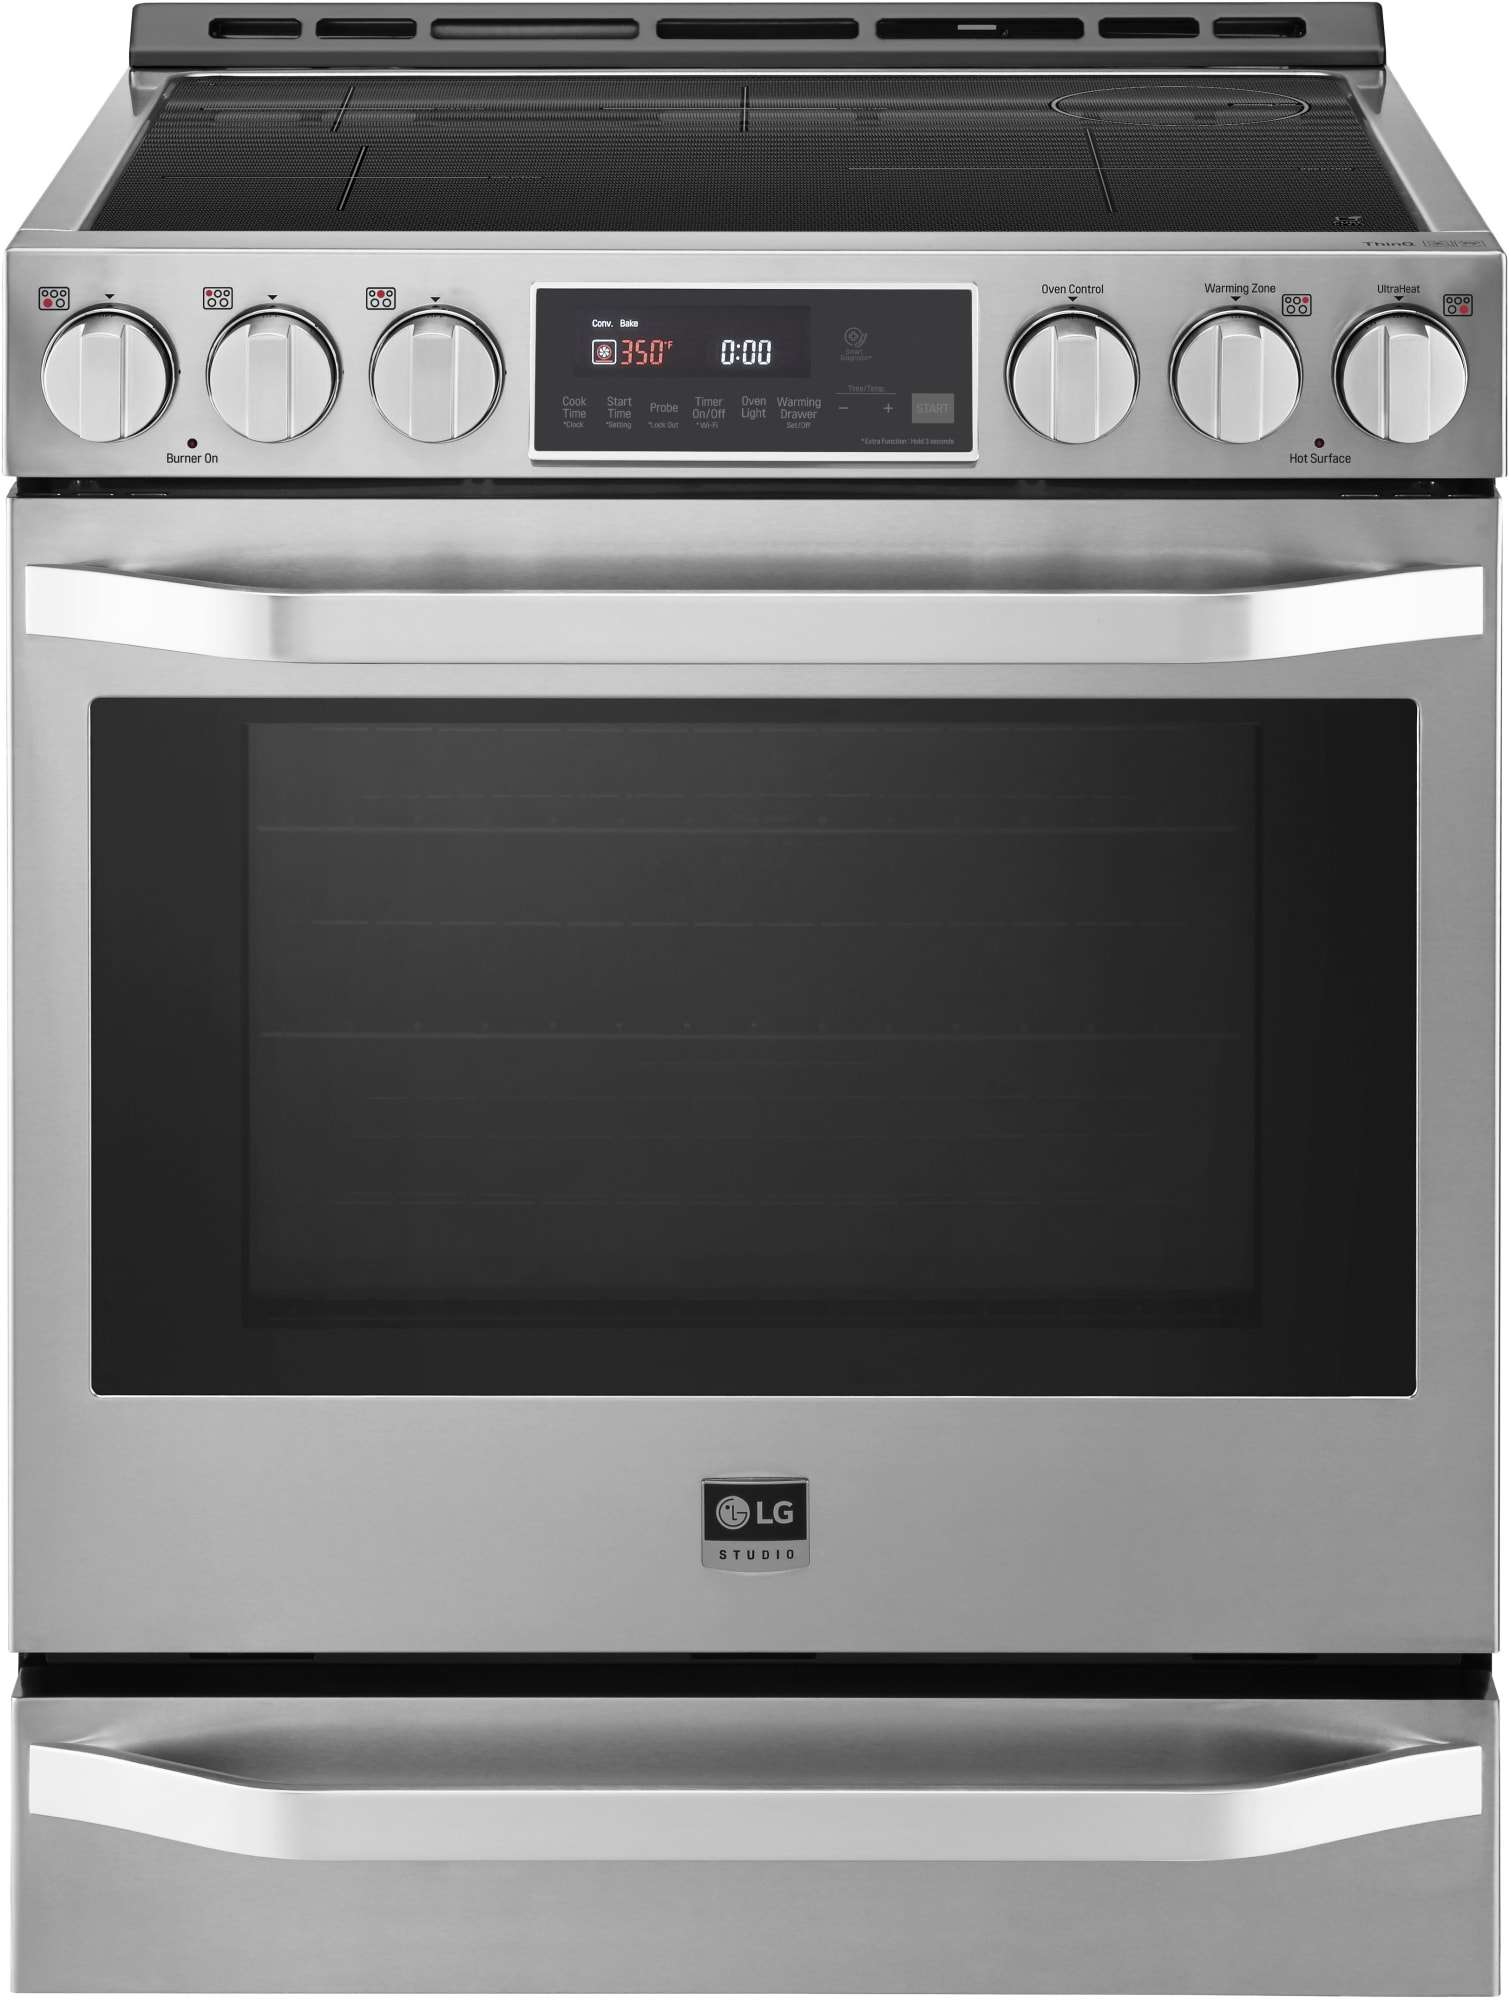 The LG STUDIO LSIS3018SS 6.3 cu. ft. Slide-In Induction Range with EasyClean has a warming drawer and smart capabilities.